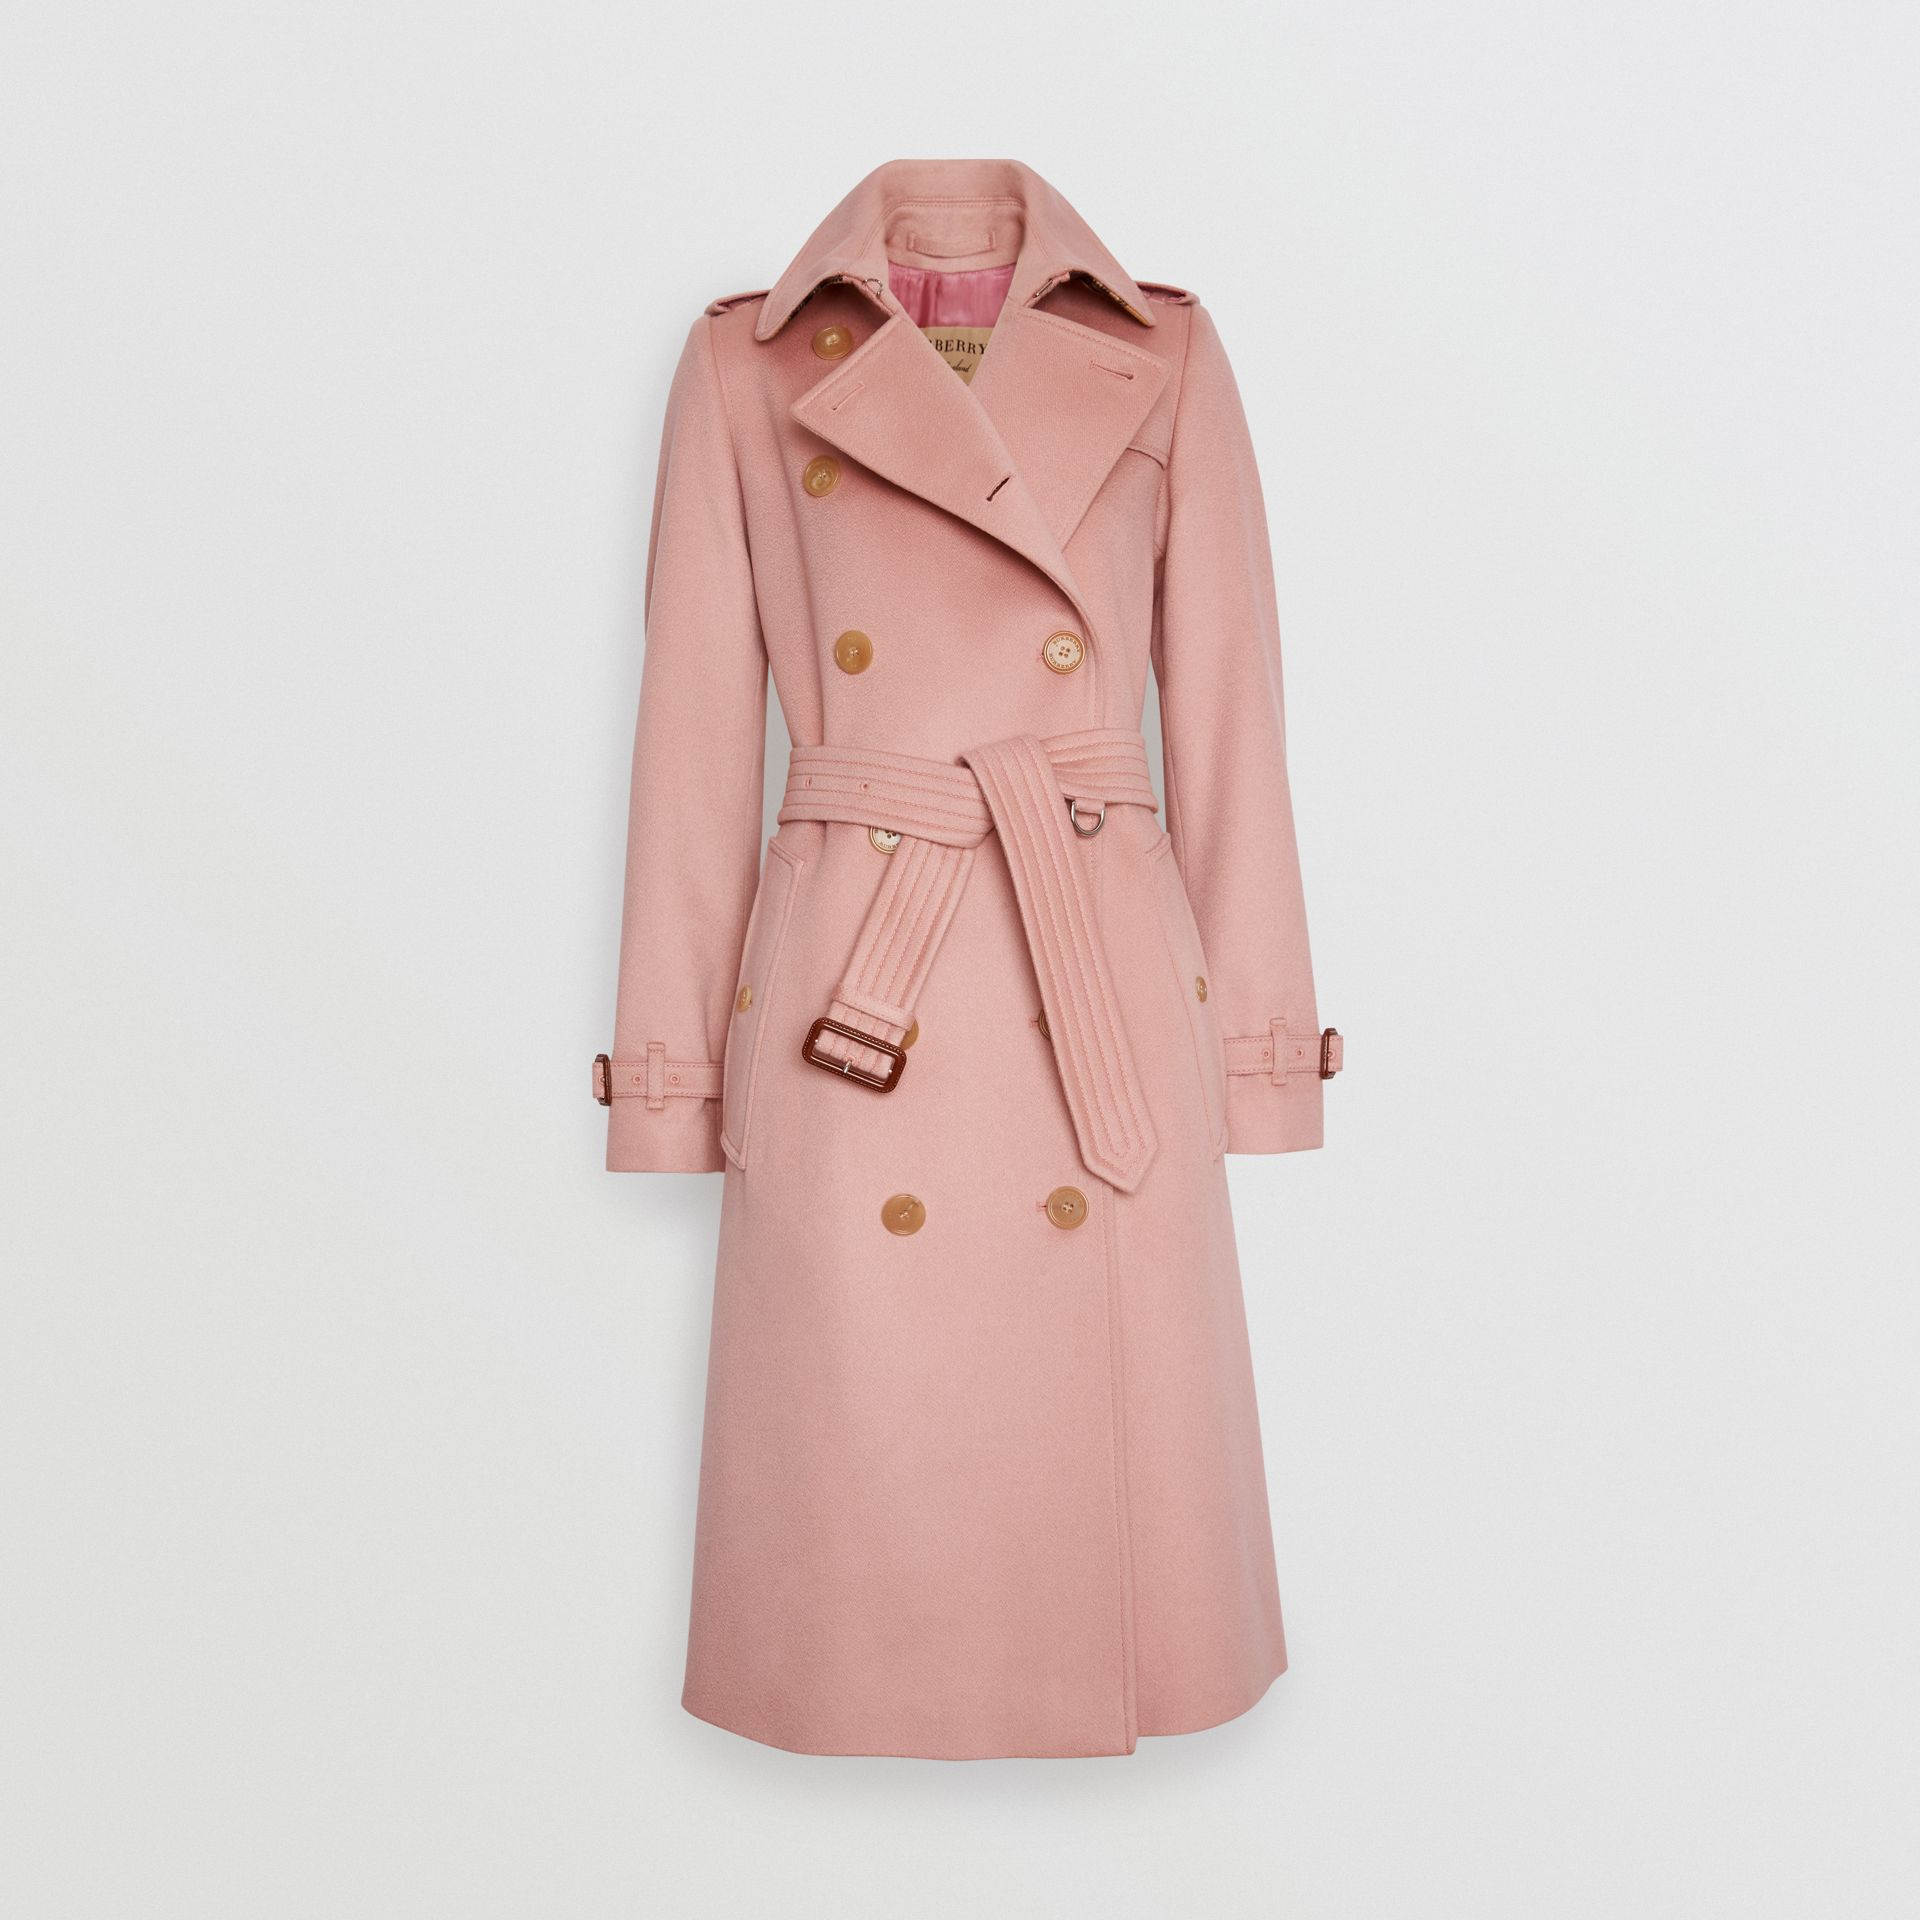 Cashmere Trench Coat in Chalk Pink - Women | Burberry Canada - gallery image 3